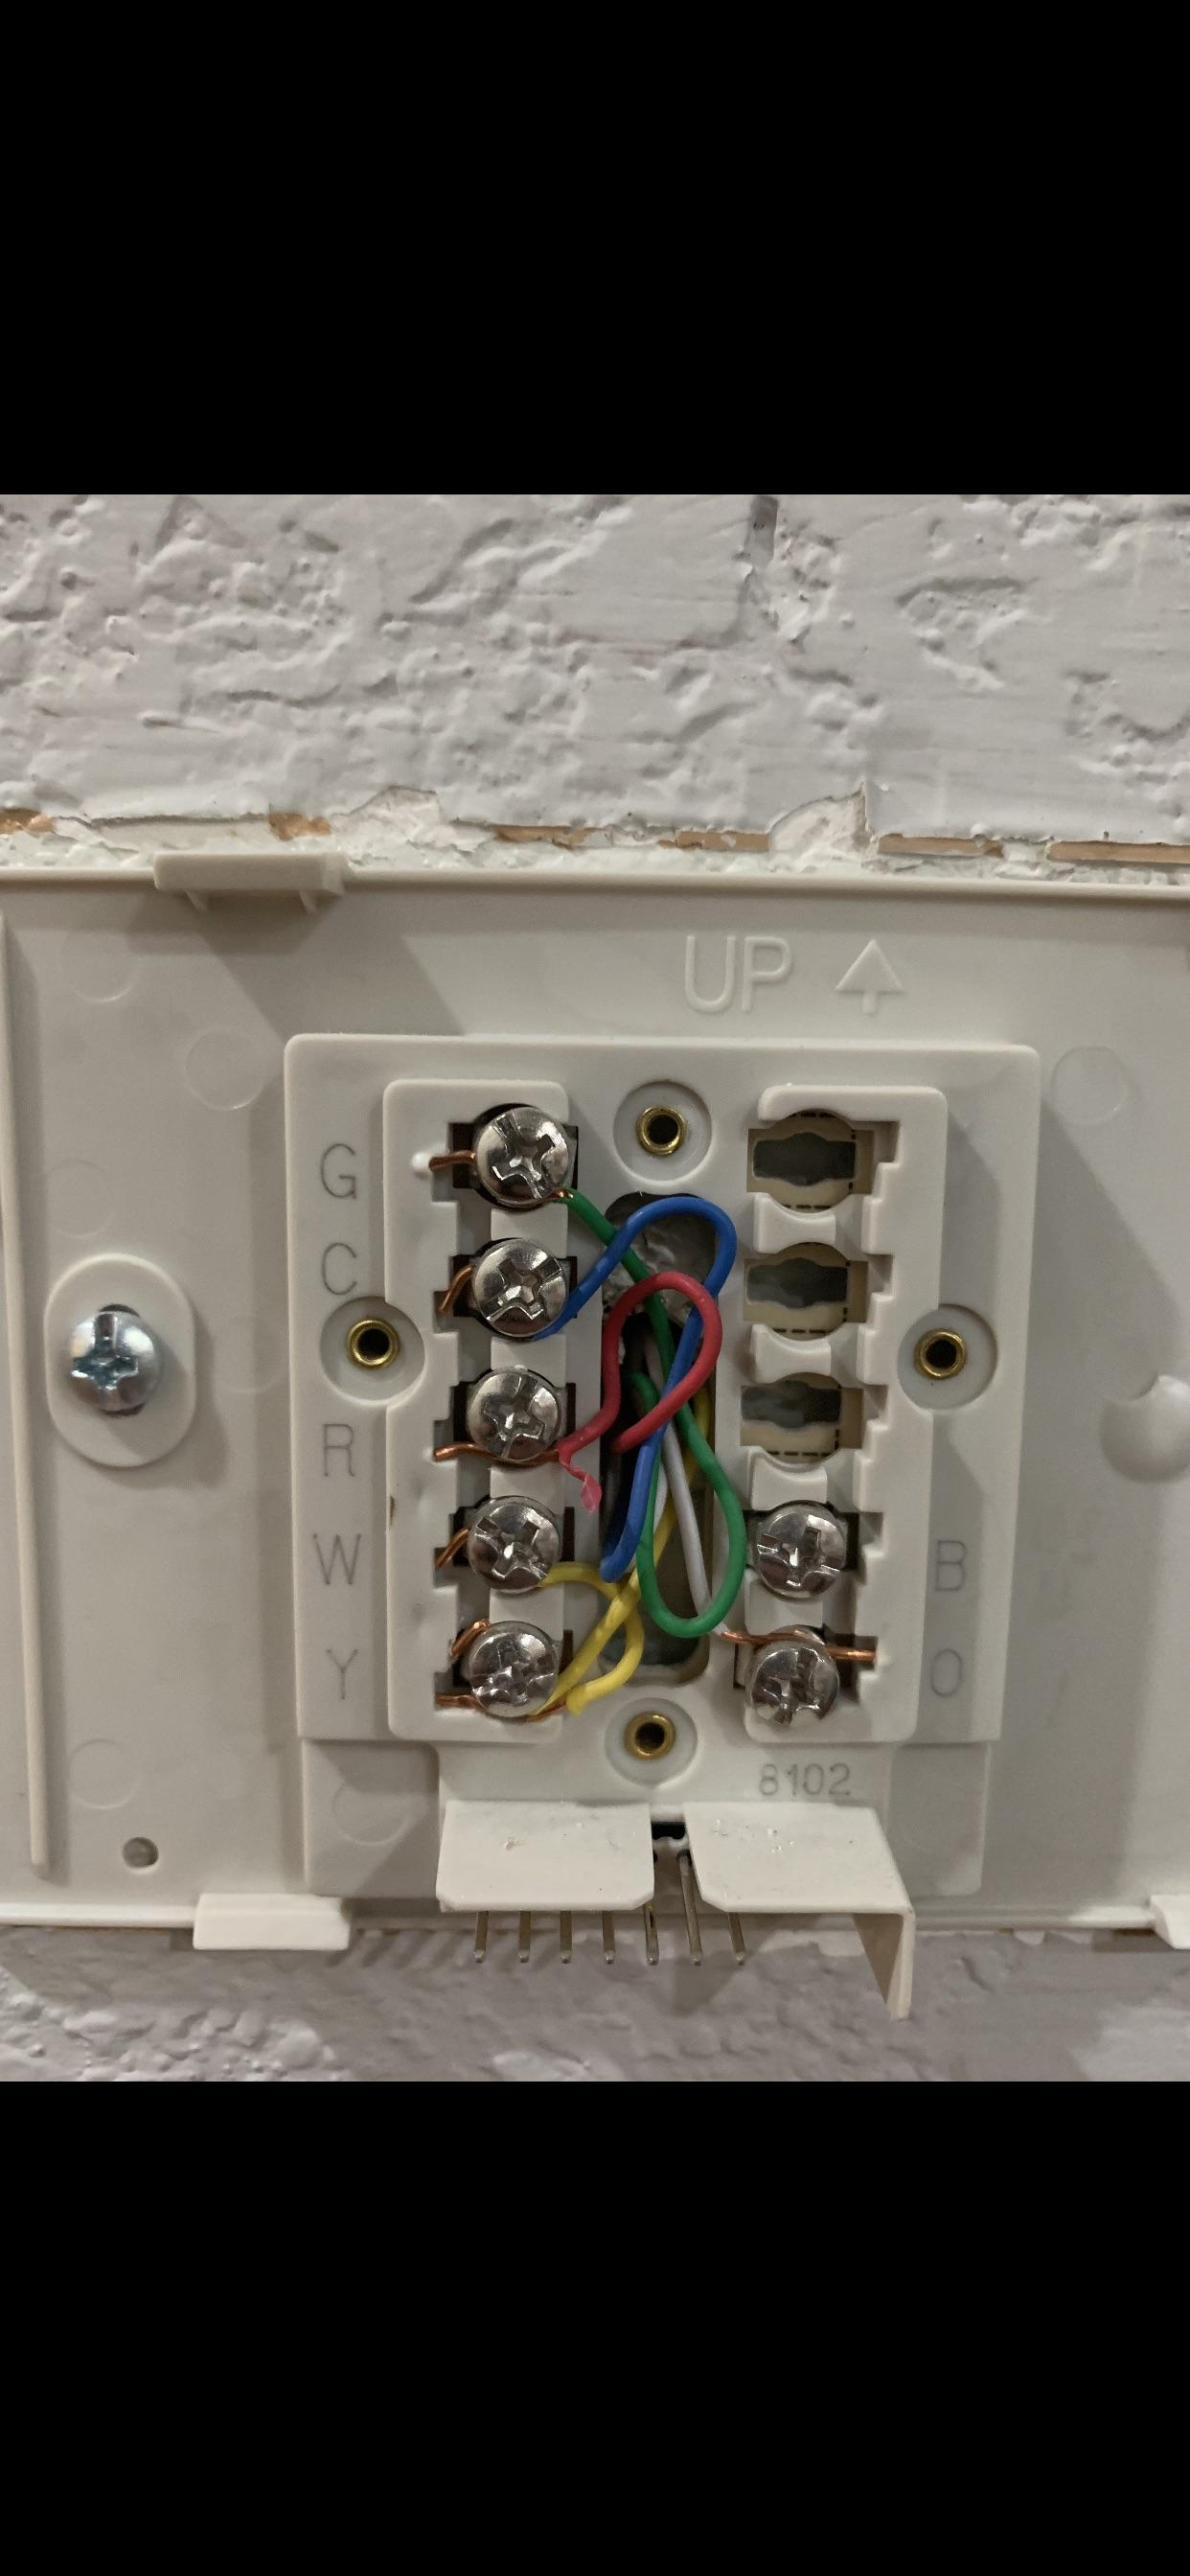 "Thermostat Wiring Honeywell : thermostat, wiring, honeywell, Thermostat, Wiring, Current, Honeywell, ""Y"", ""W"", Shared?!"